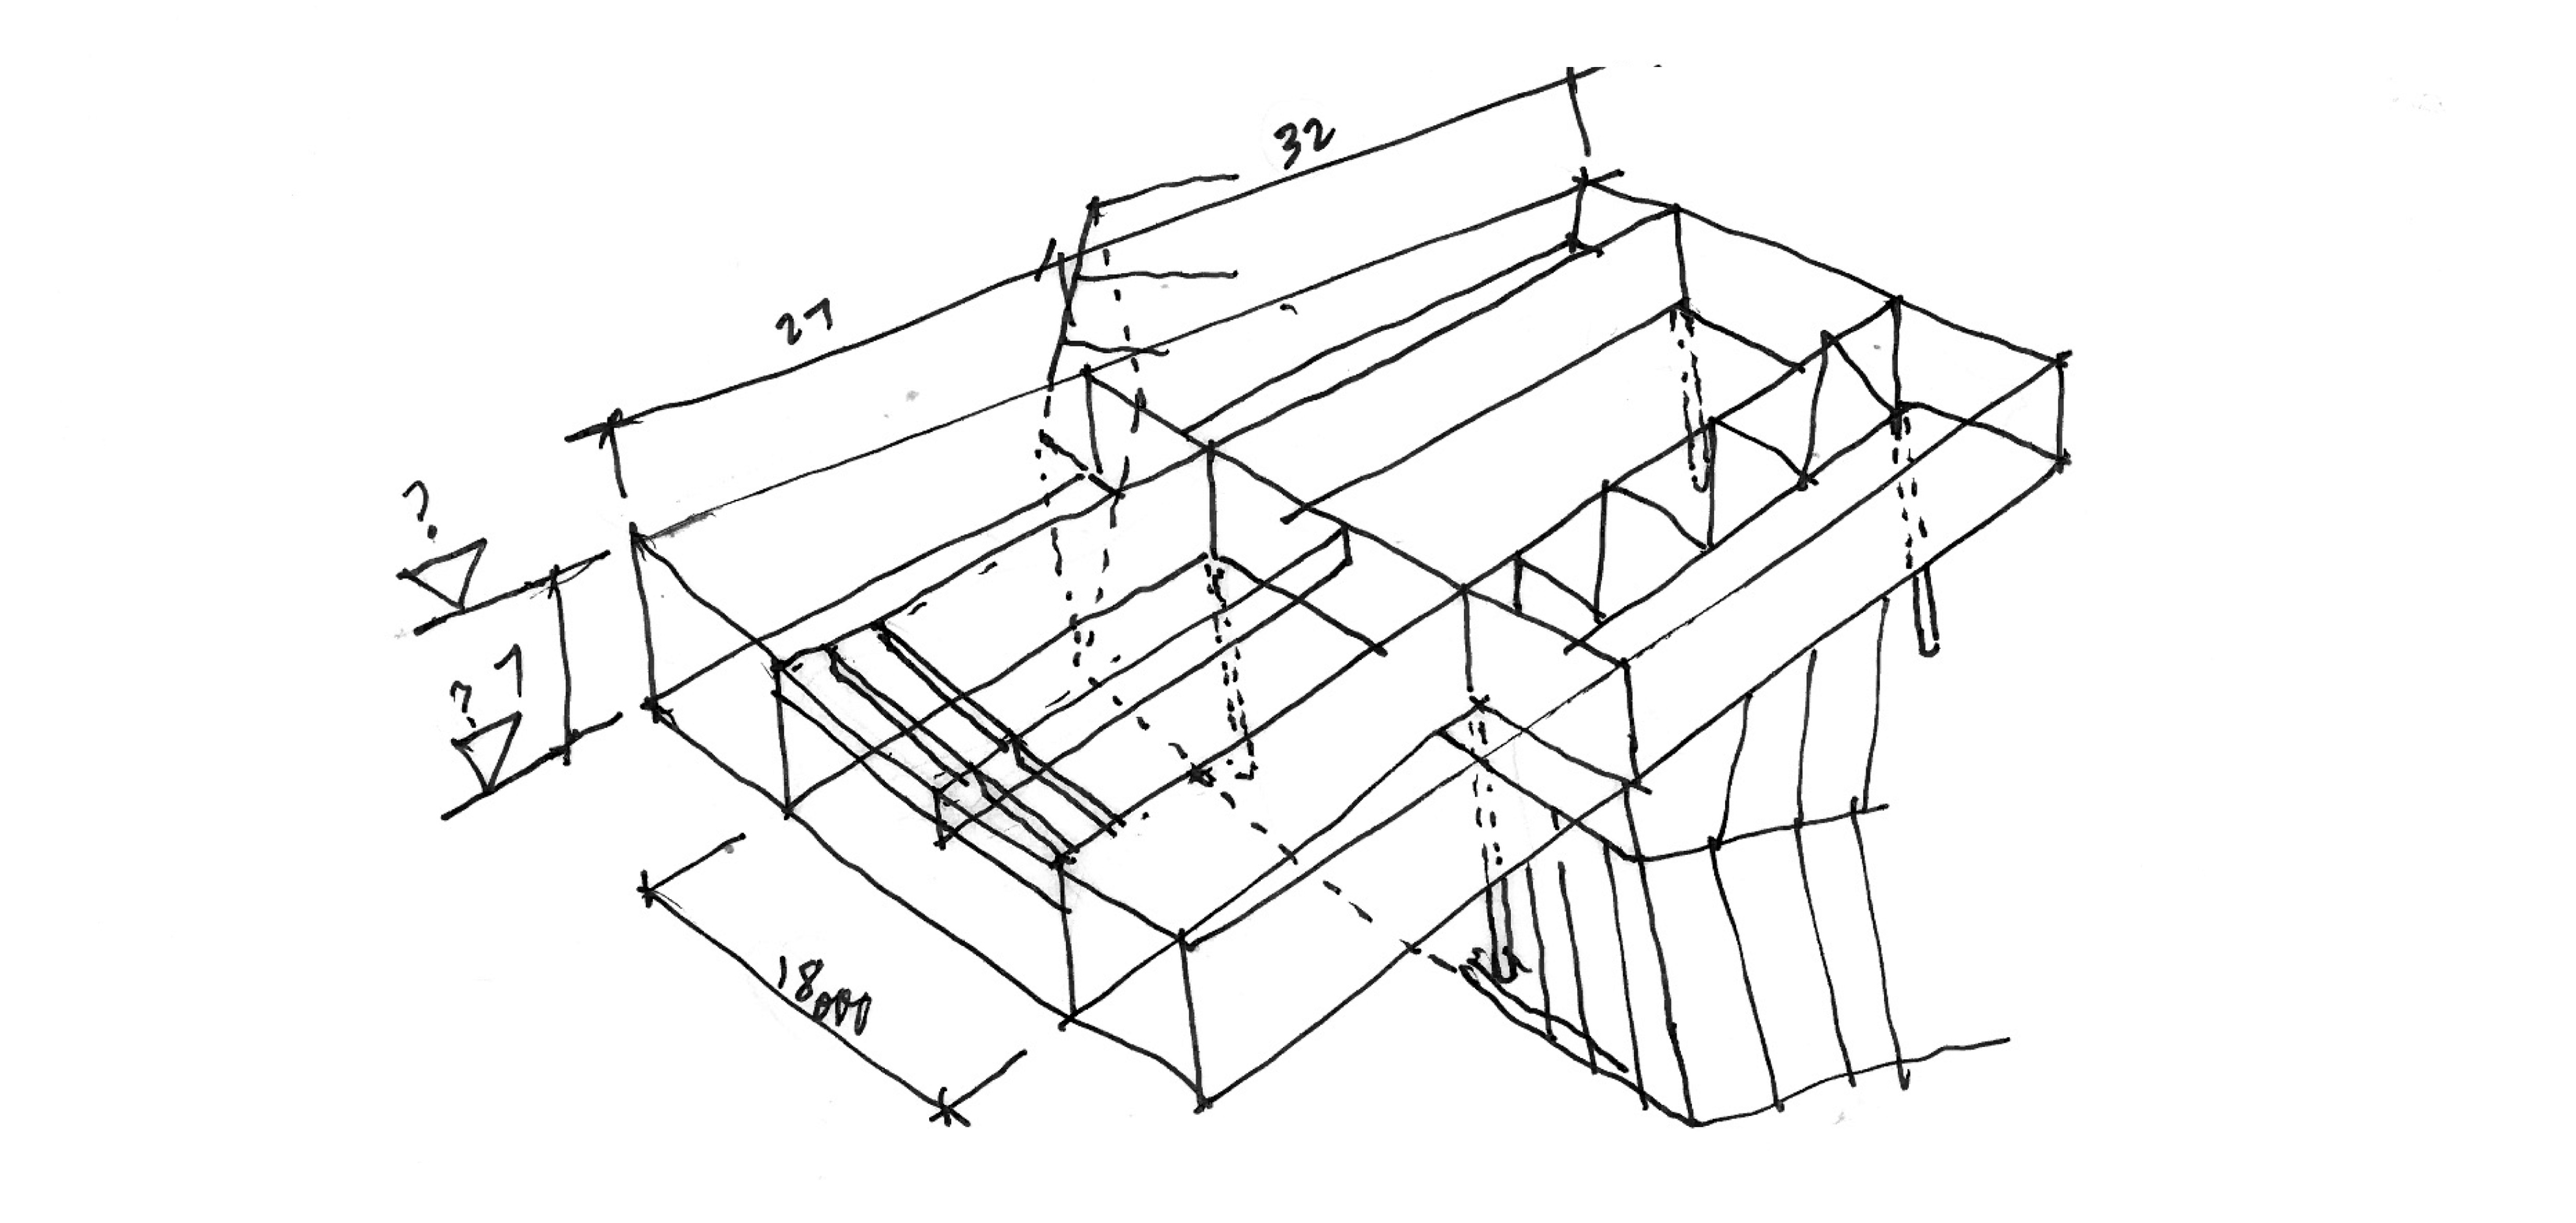 Conceptual architectural sketching sketchingjourney 39 s blog for Architecture sketch